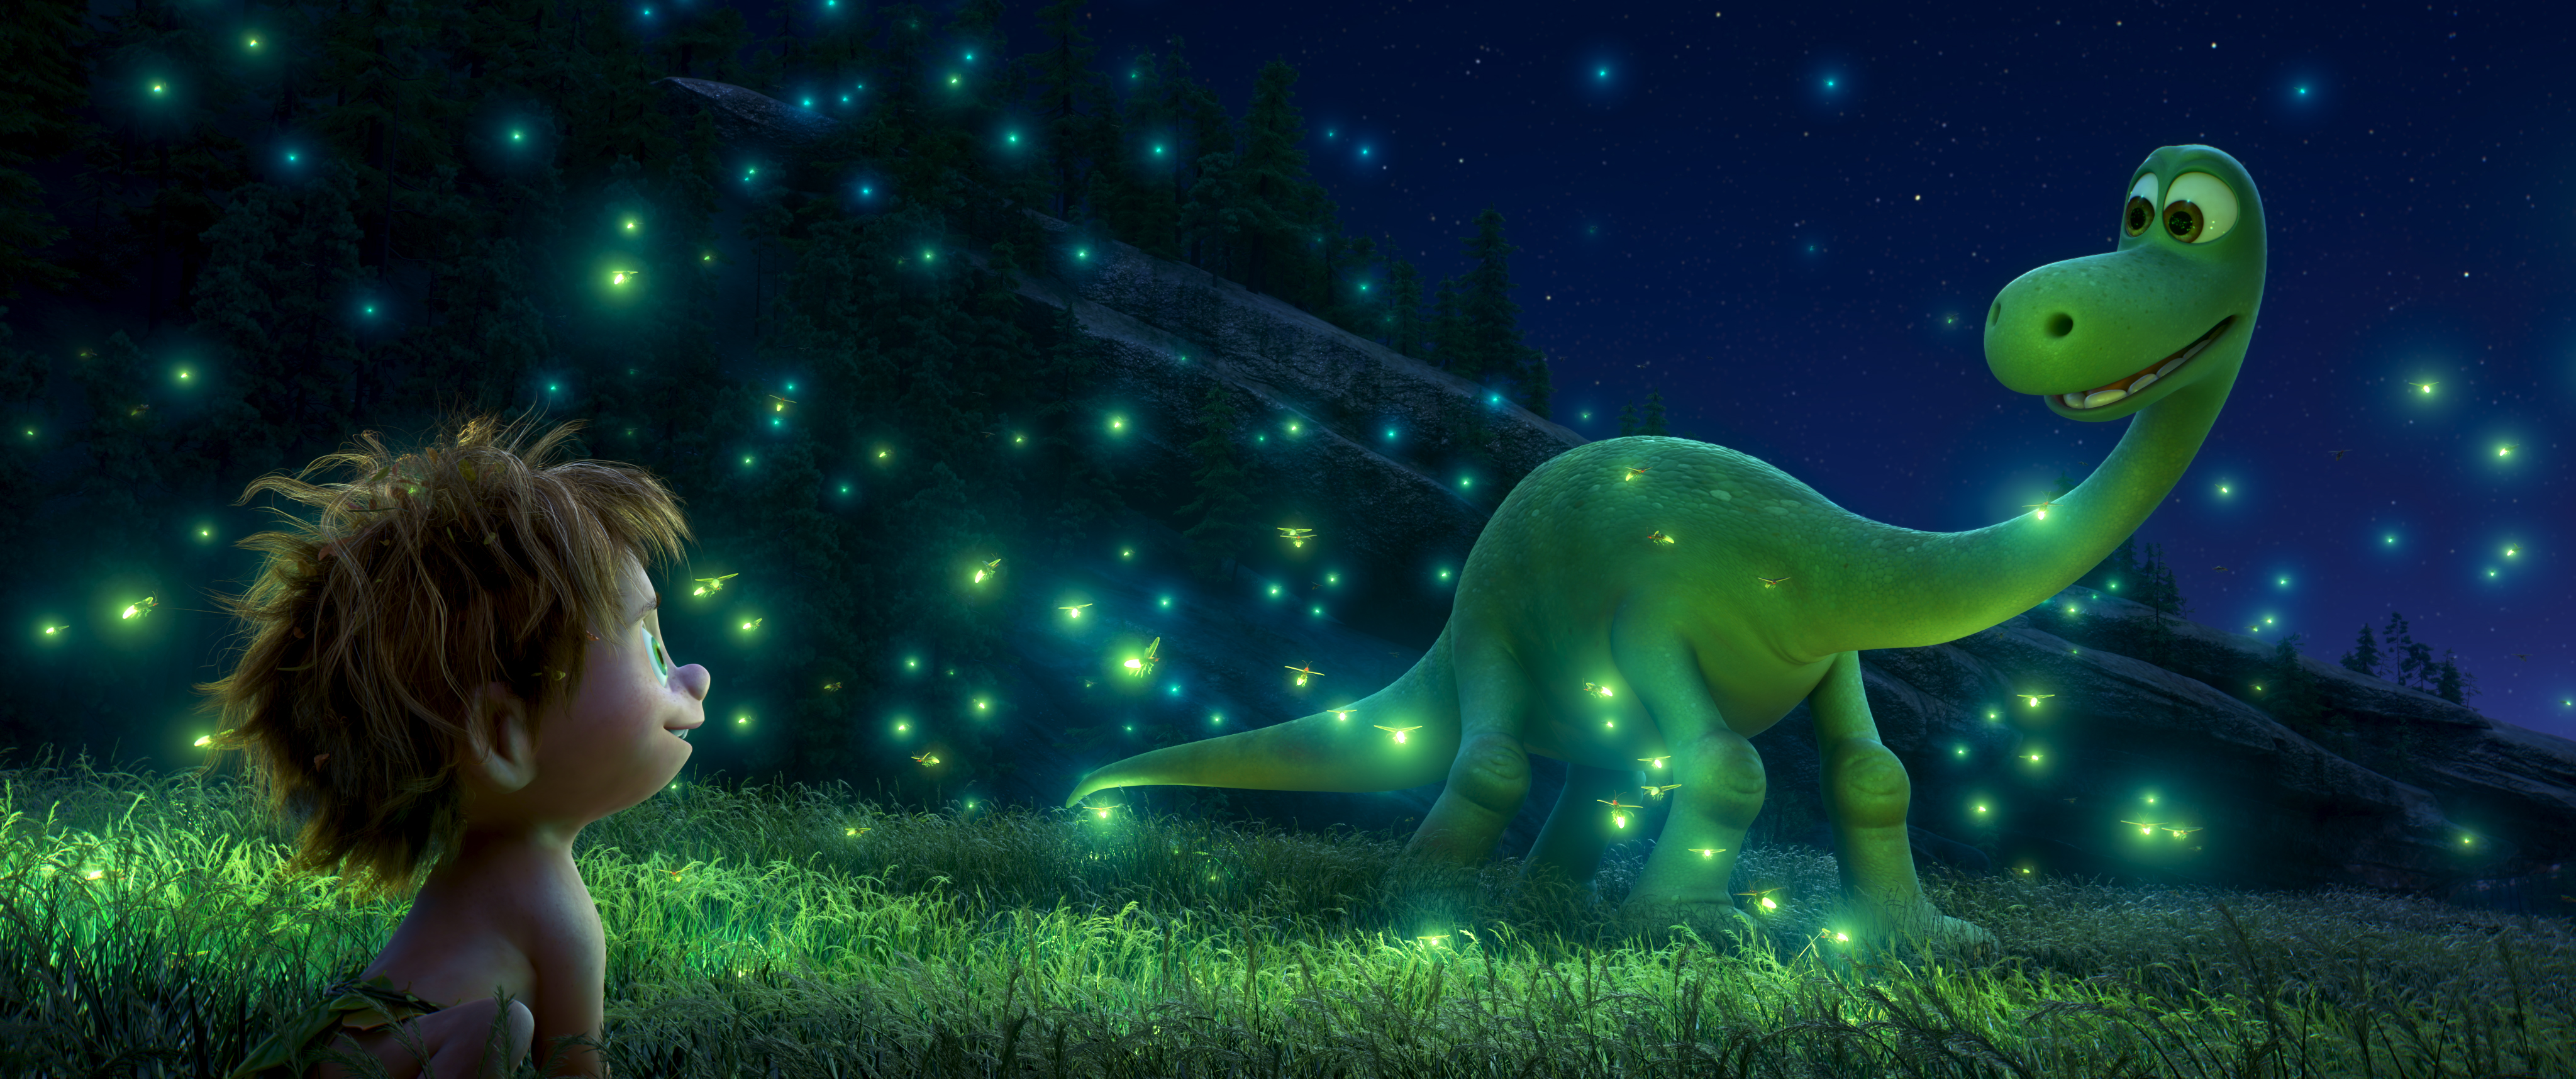 "Disney-Pixar Promoting Evolution? Ken Ham Warns Parents About ""The Good Dinosaur"" Movie"